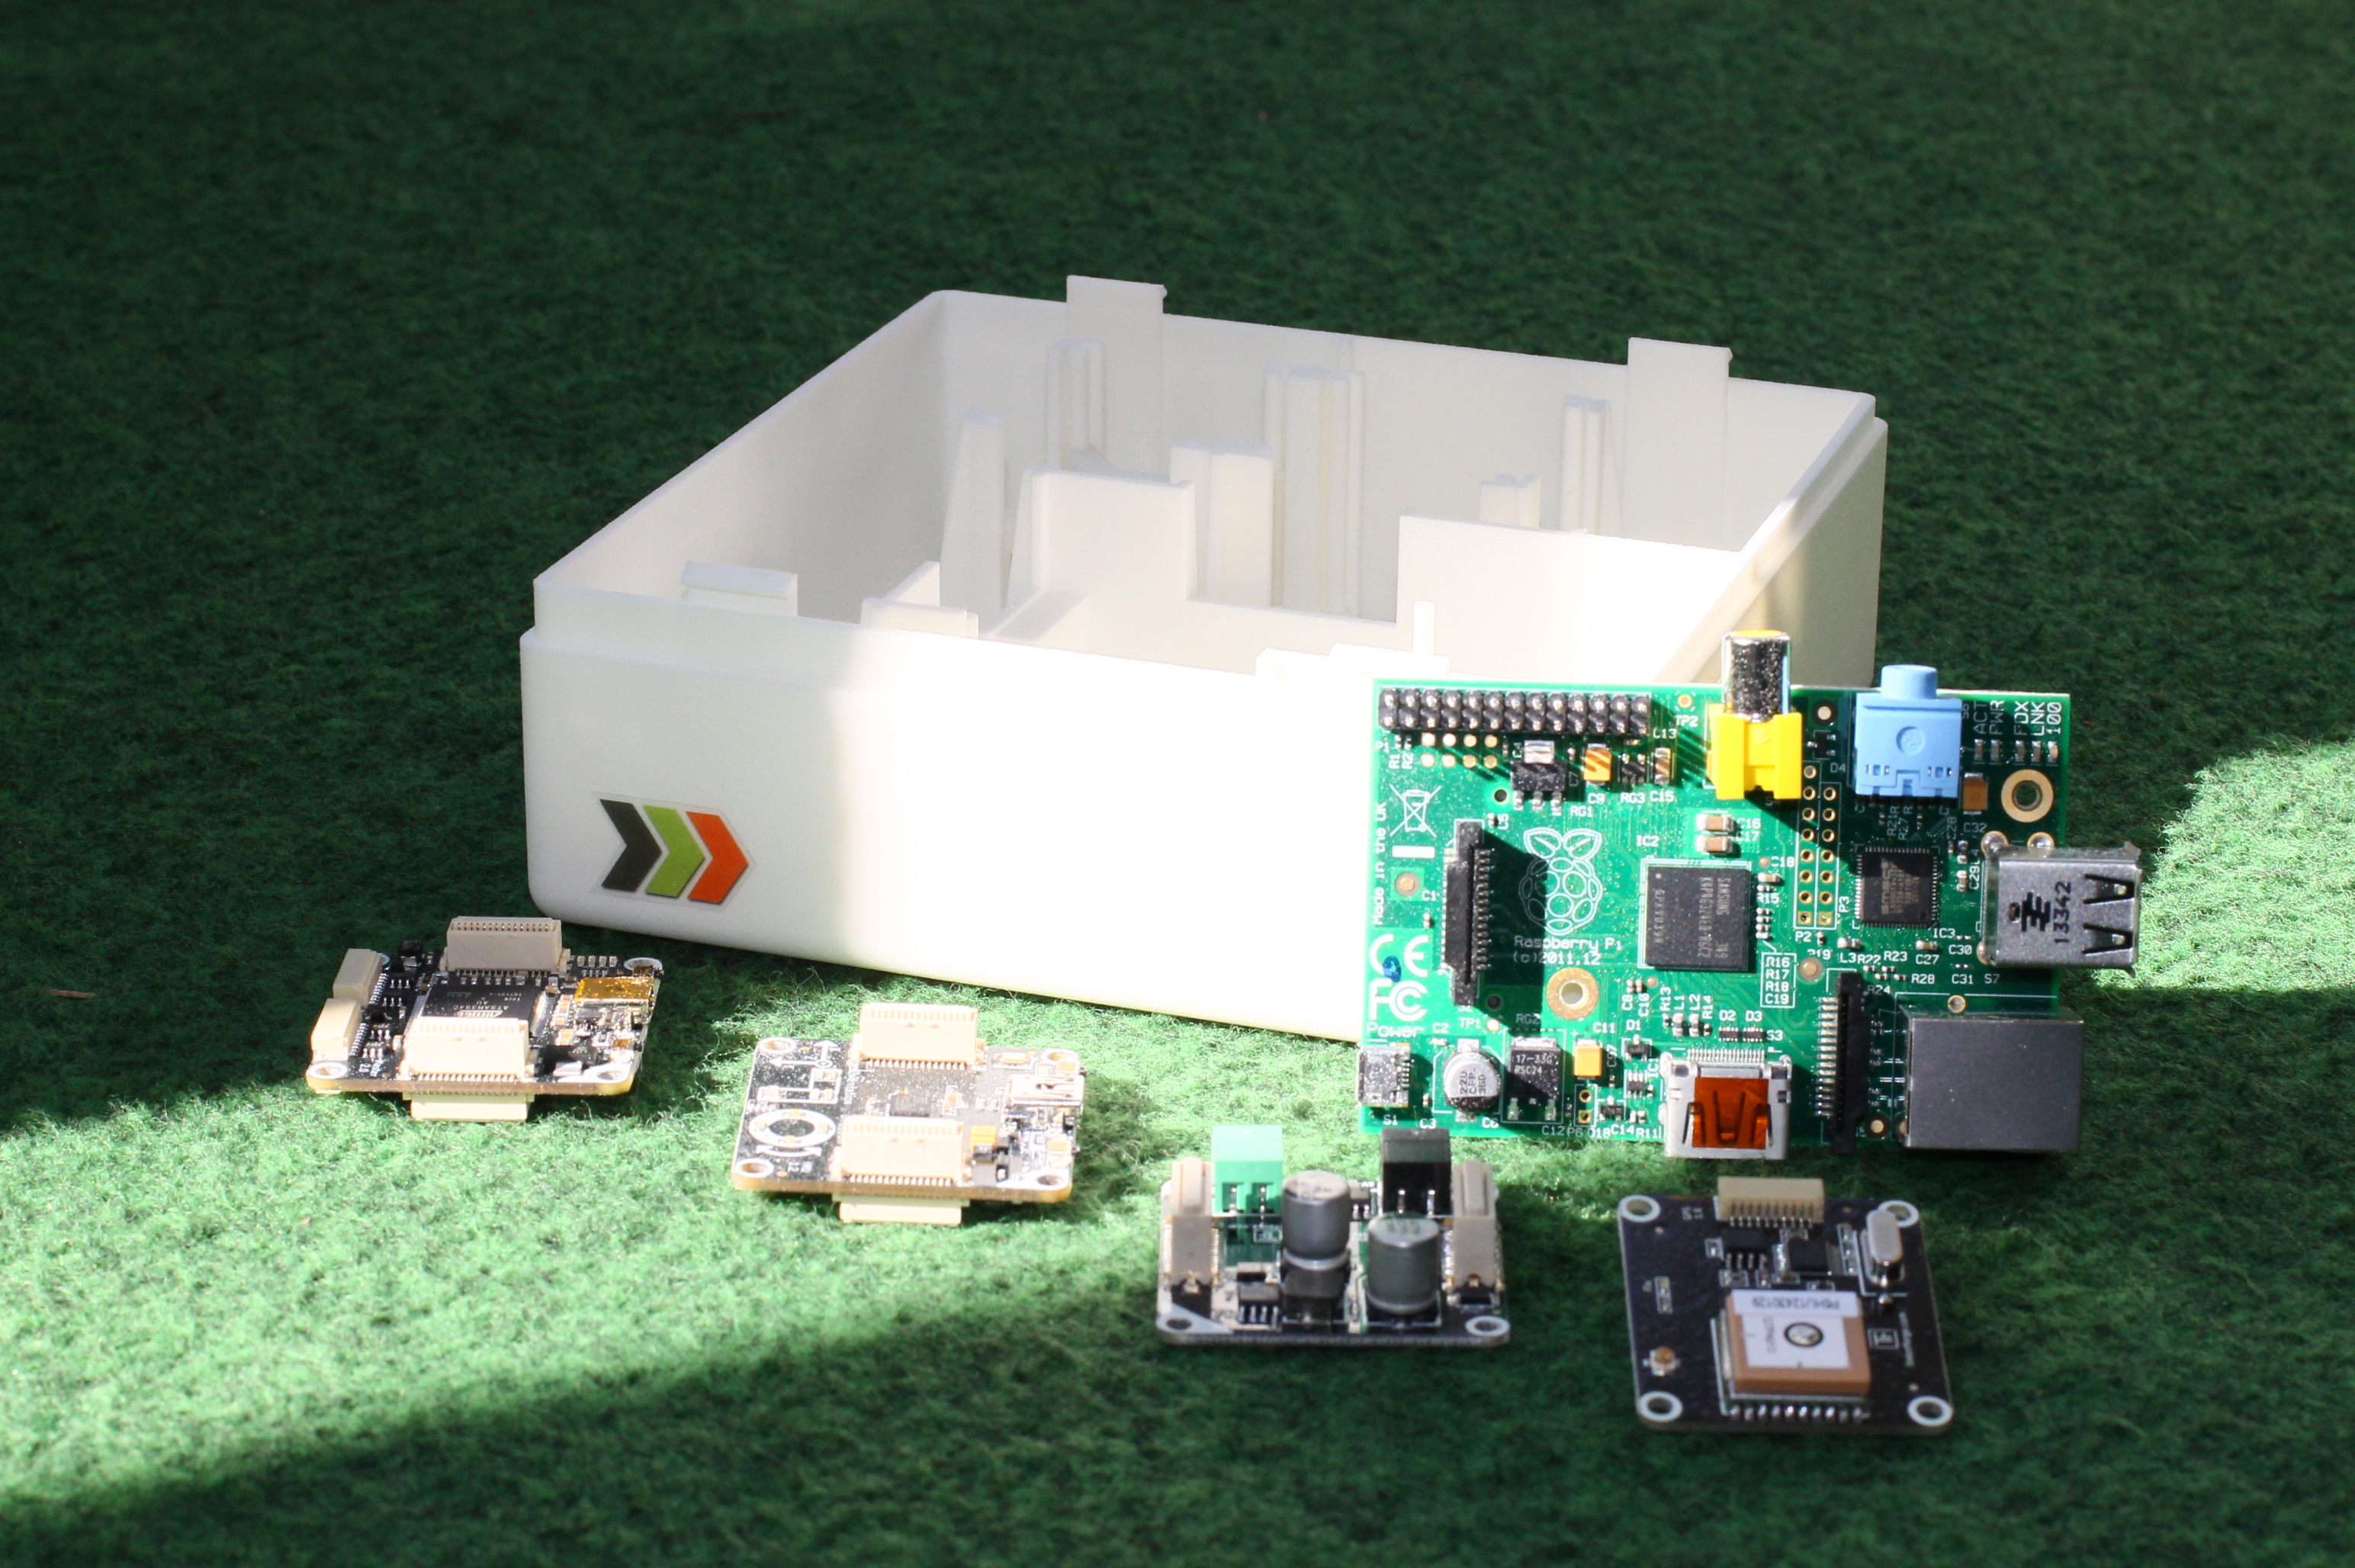 Tinkerforge IMU, Power Supply, GPS und Master Bricks sowie RaspberryPi Model B mit CarPC Case